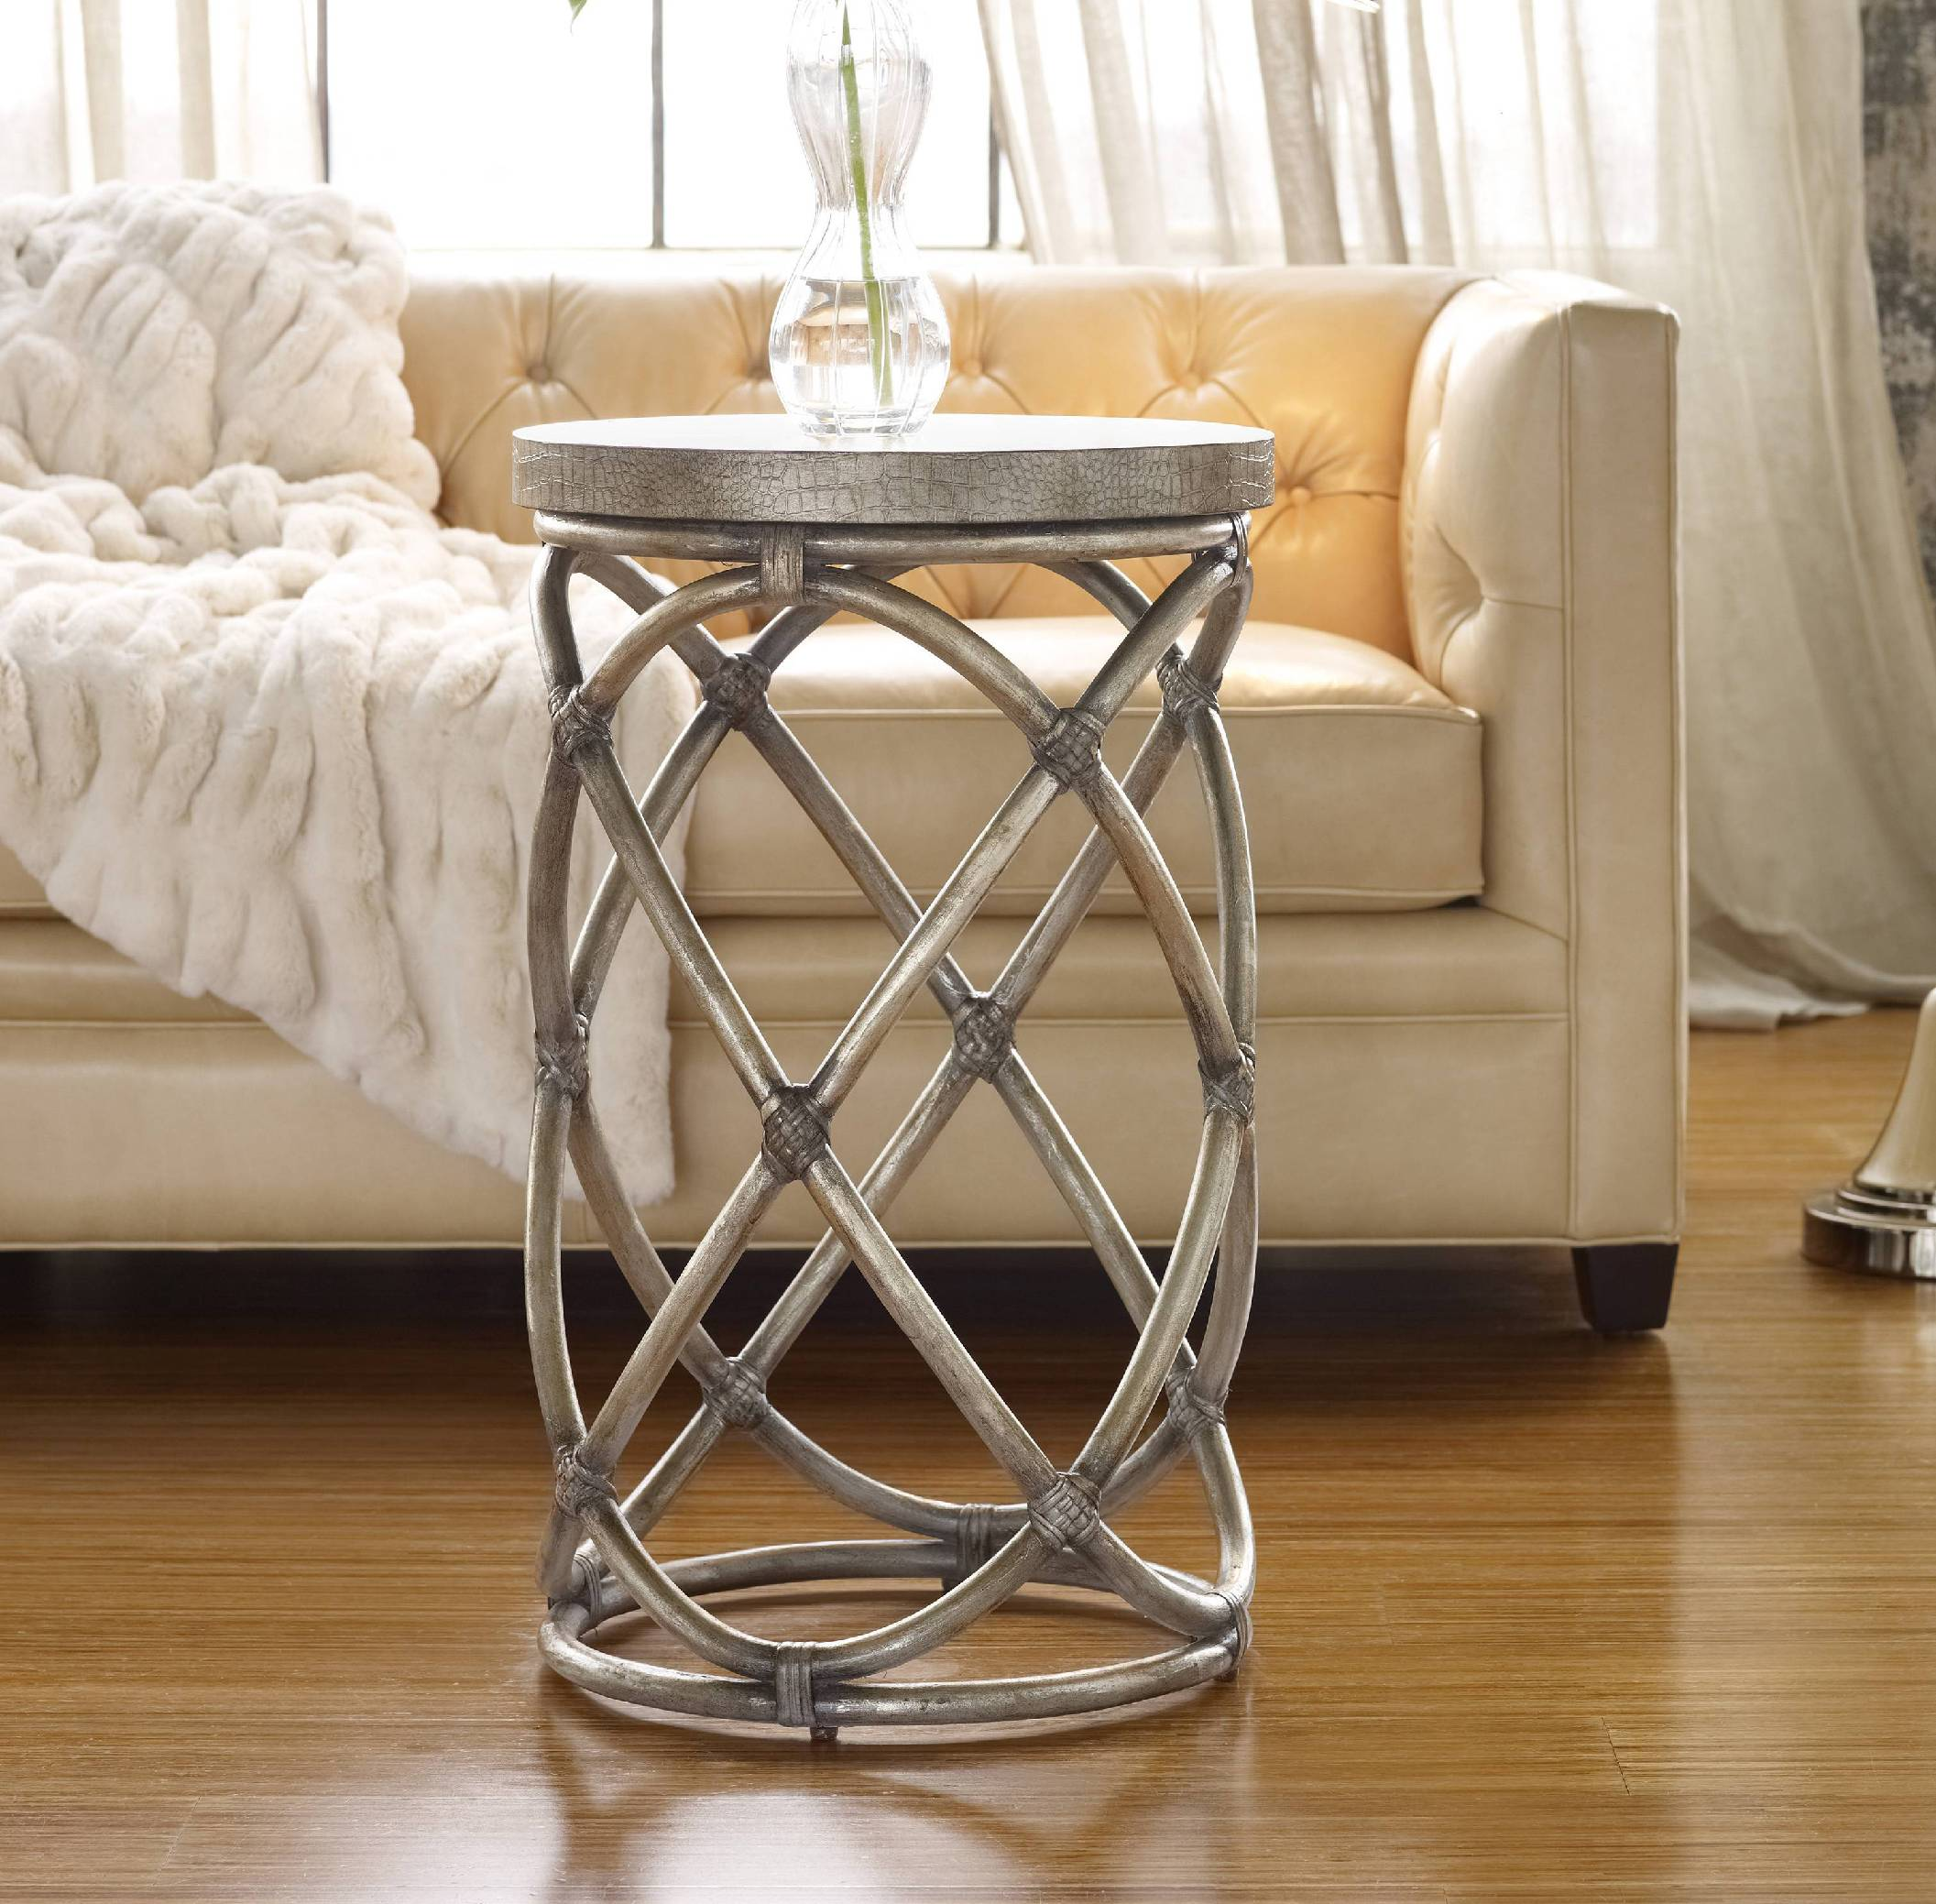 the fantastic best unique accent end tables ture jockboymusic home designing ideas amazing decoration modern regarding decor rattan house design fine furniture chunky oak